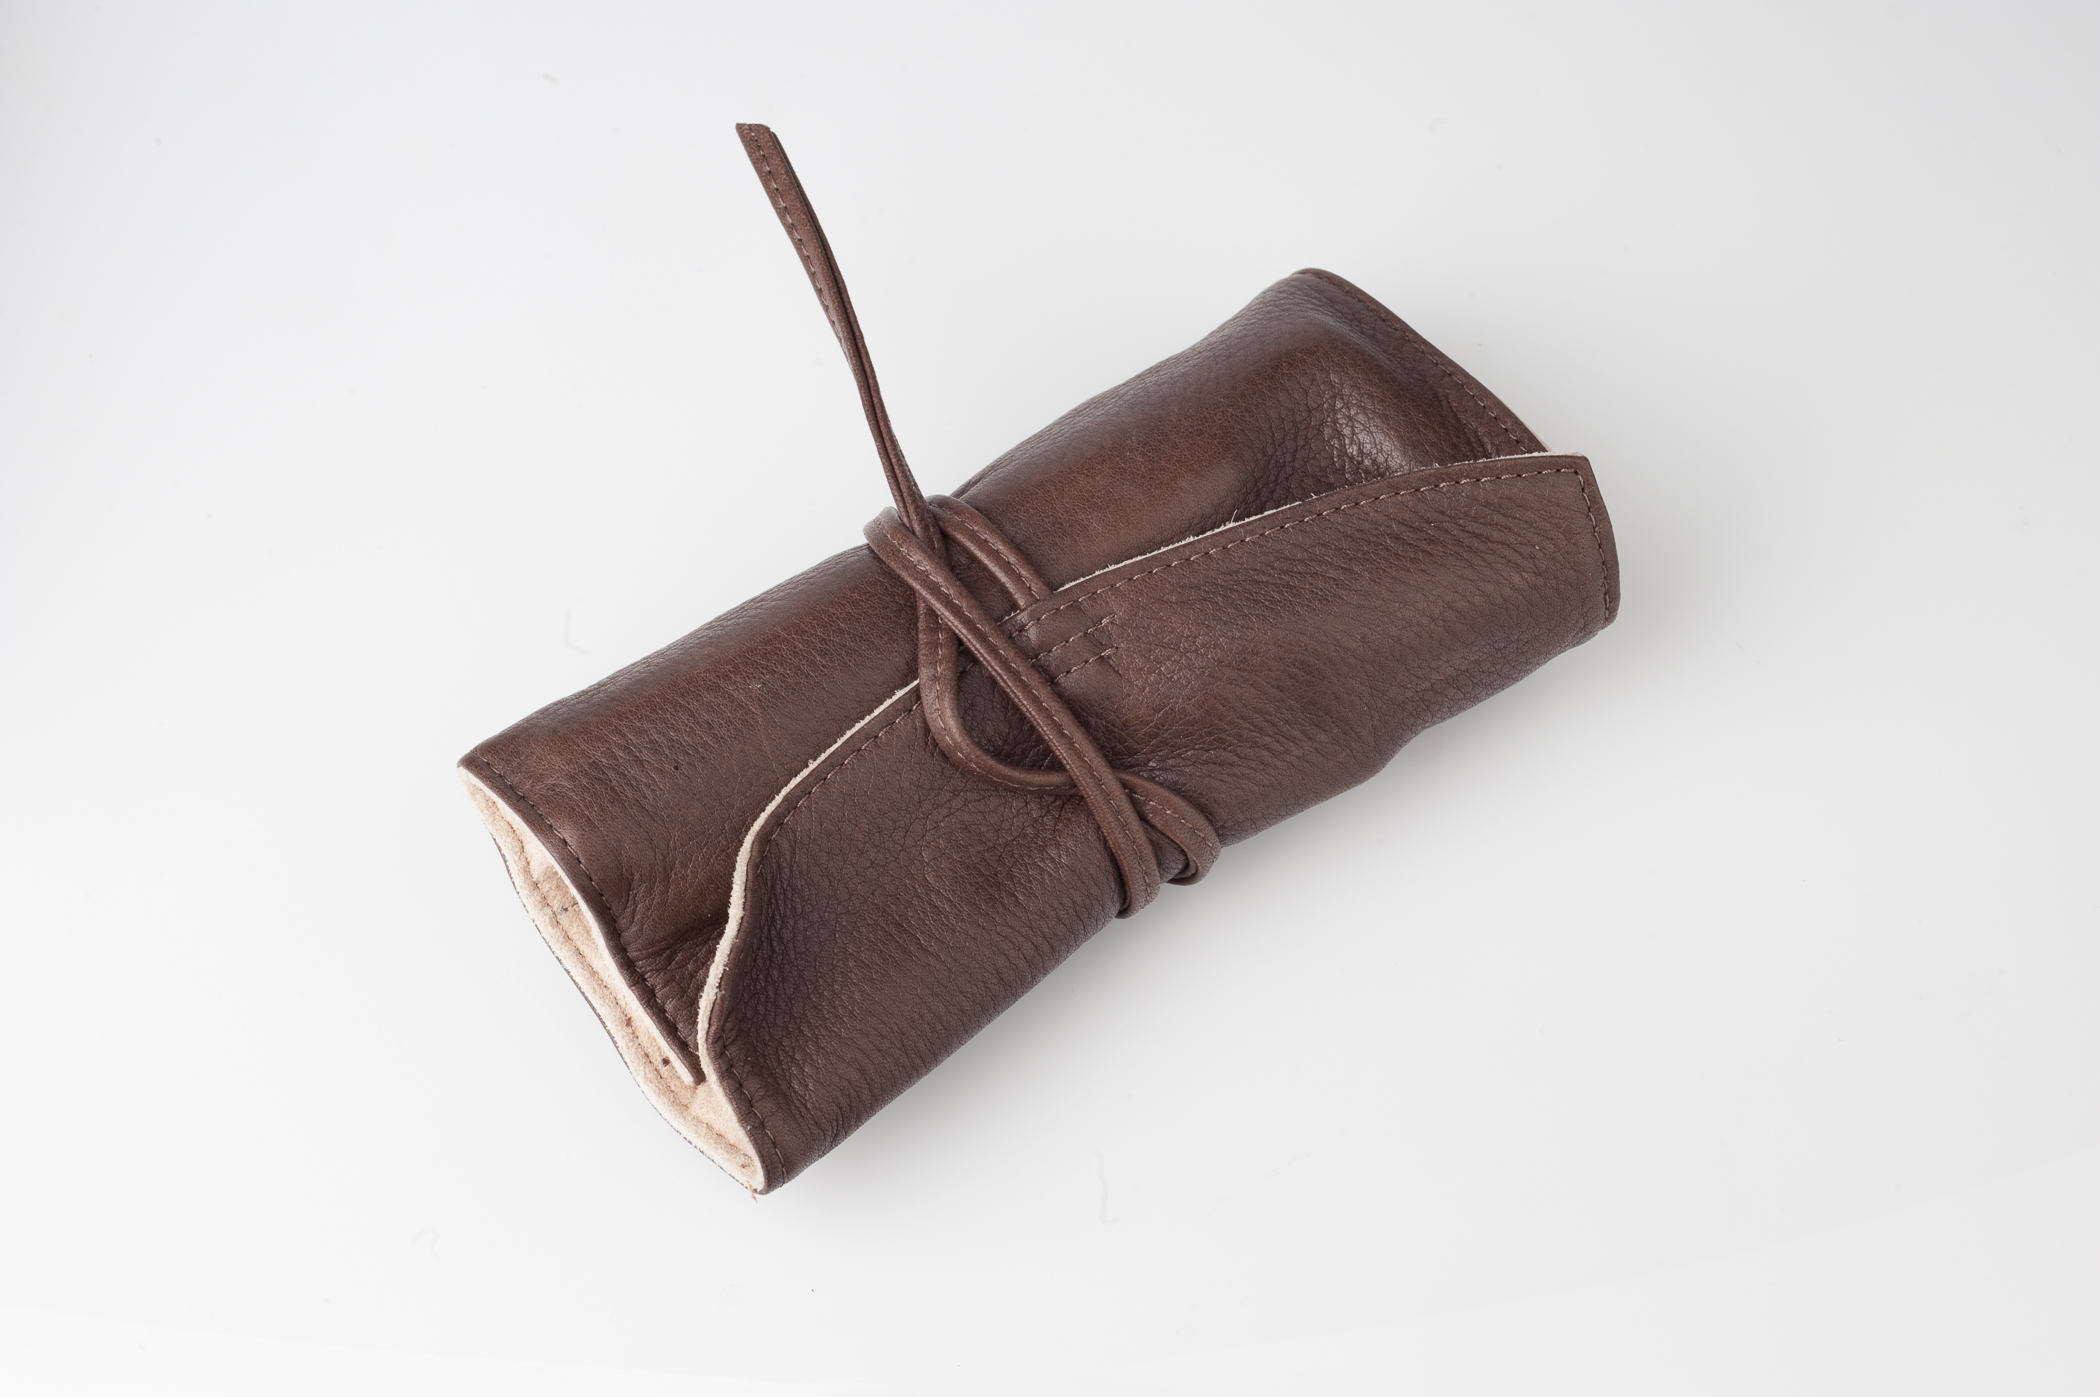 Pilot Pensemble Leather Pen Roll wrapped for storage